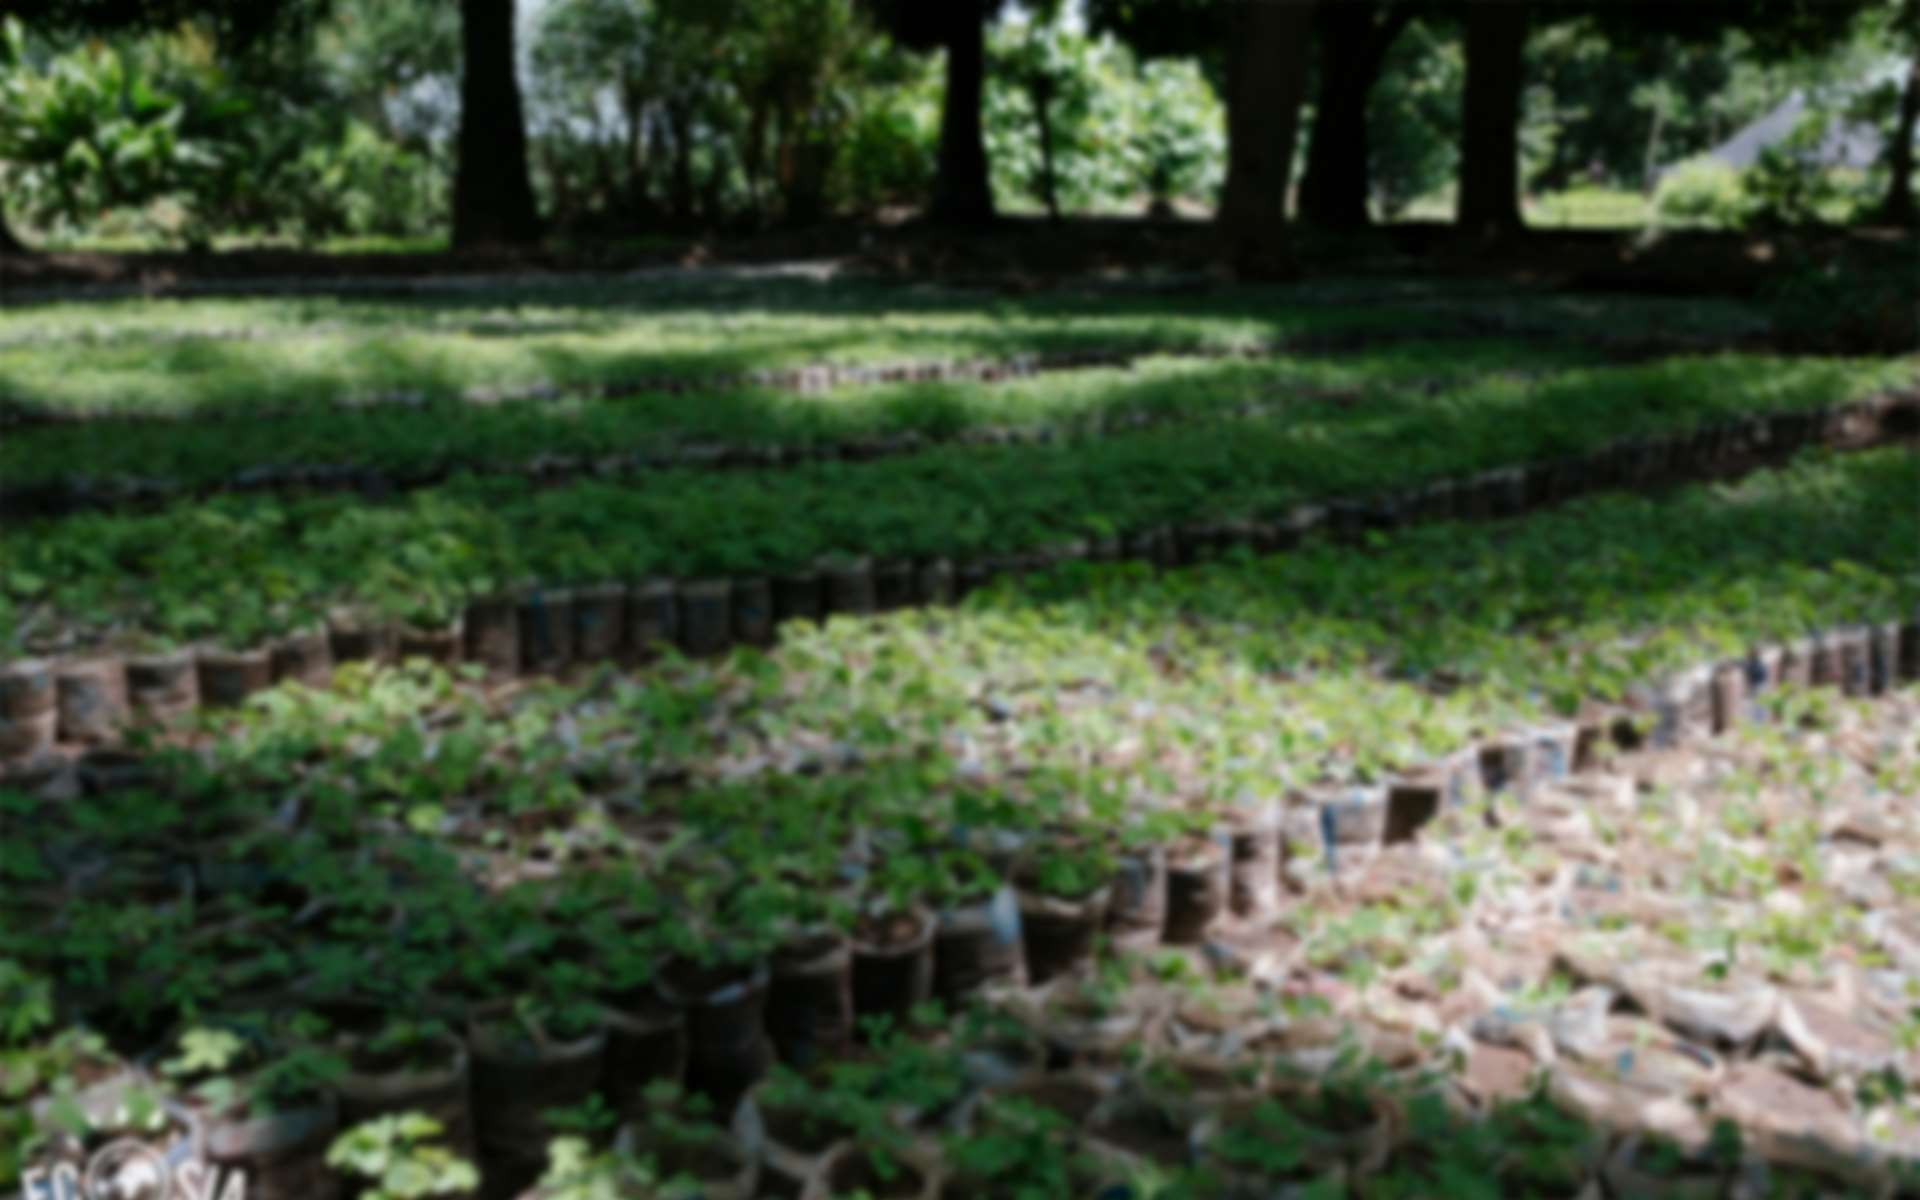 Rows of tree saplings lined up in a tree nursery, ready to be planted along the Daka river through Tree Aid and Ecosia's project in northern Ghana.